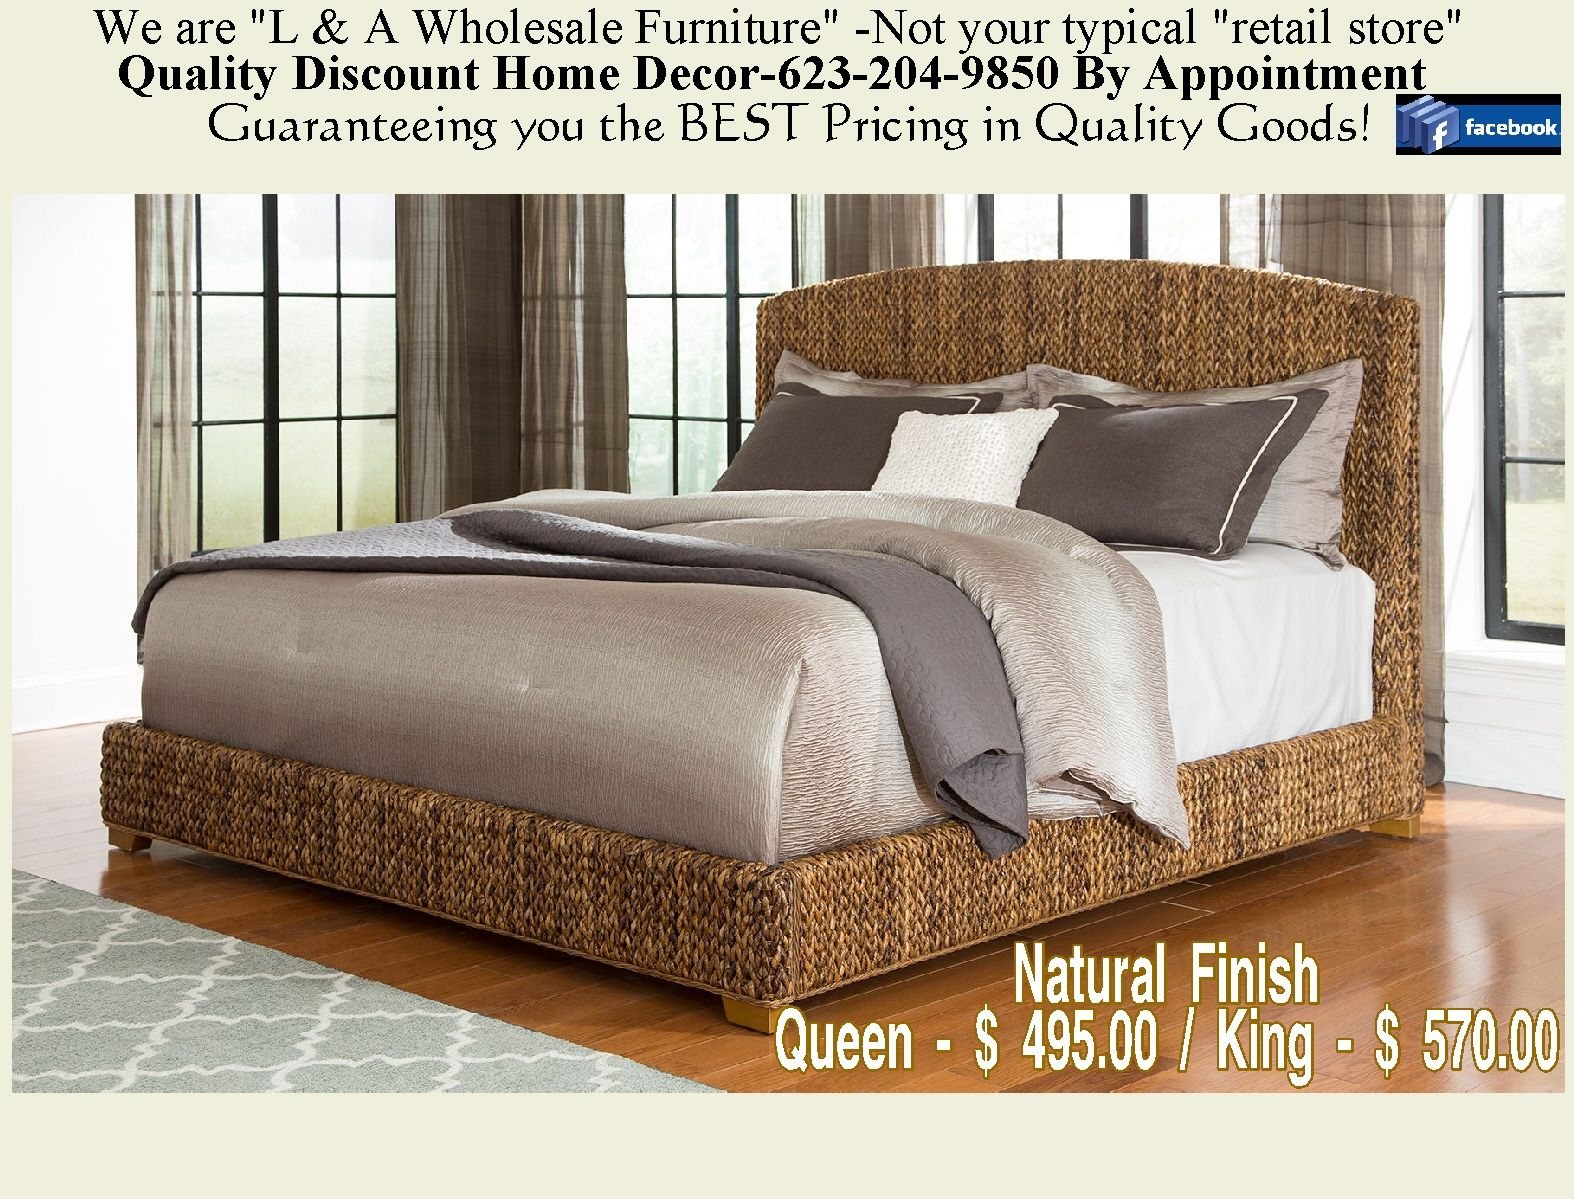 Hand Woven Banana Leaf Bed Panel bed, Upholstered